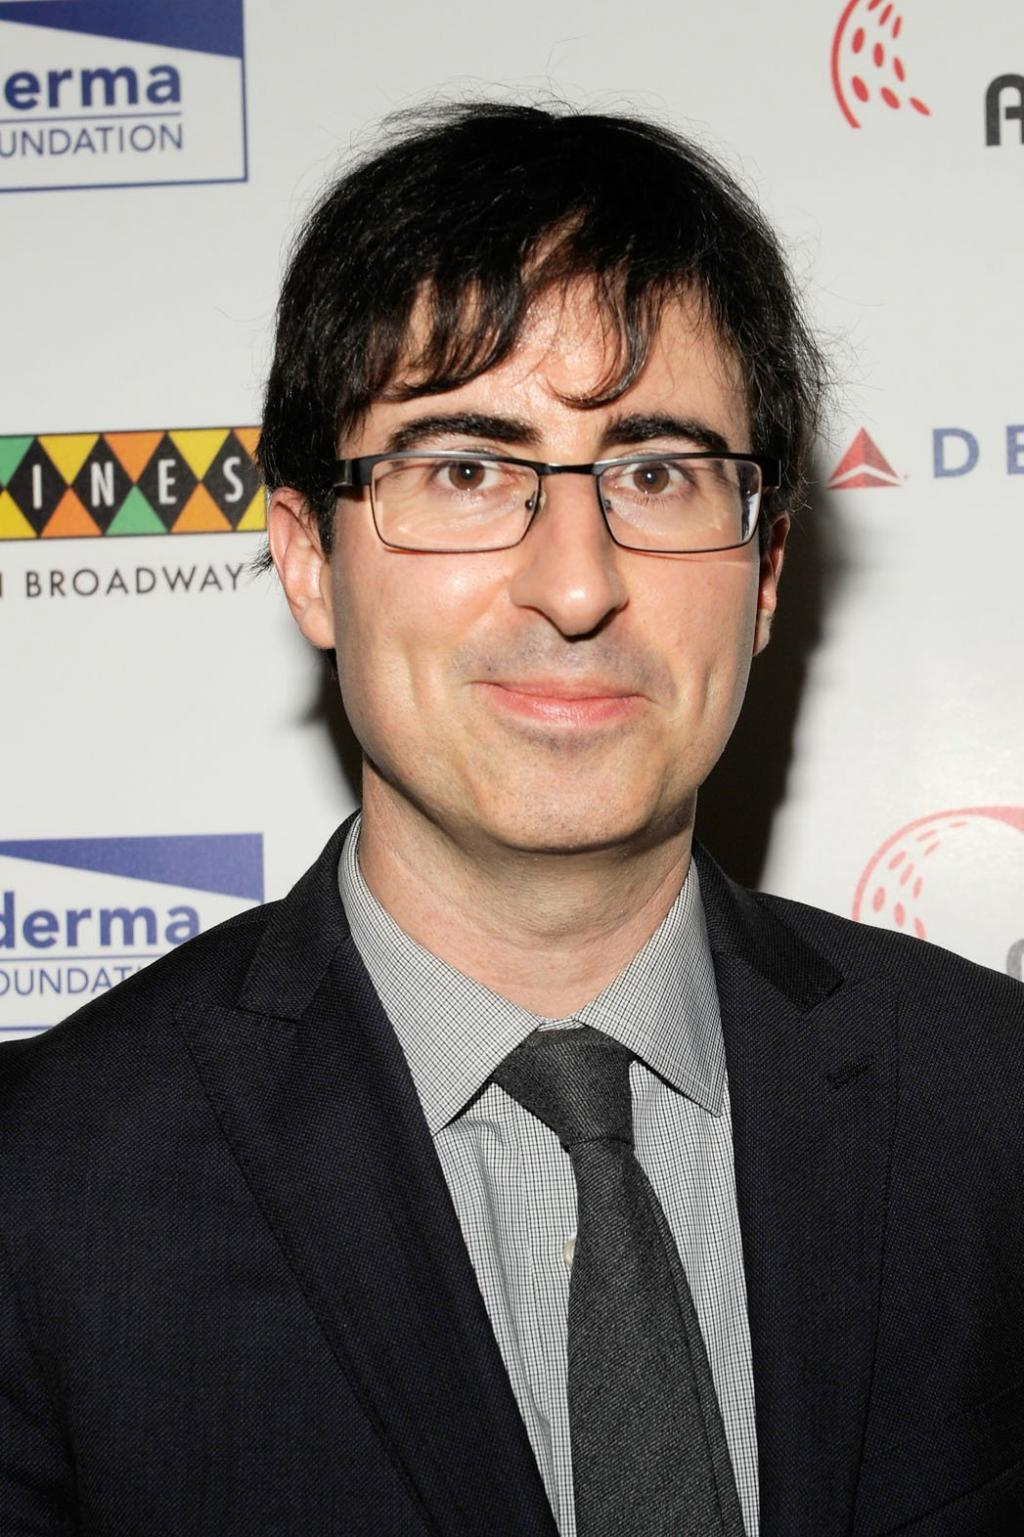 John Oliver To Perform At Beacon Theatre, 1/30